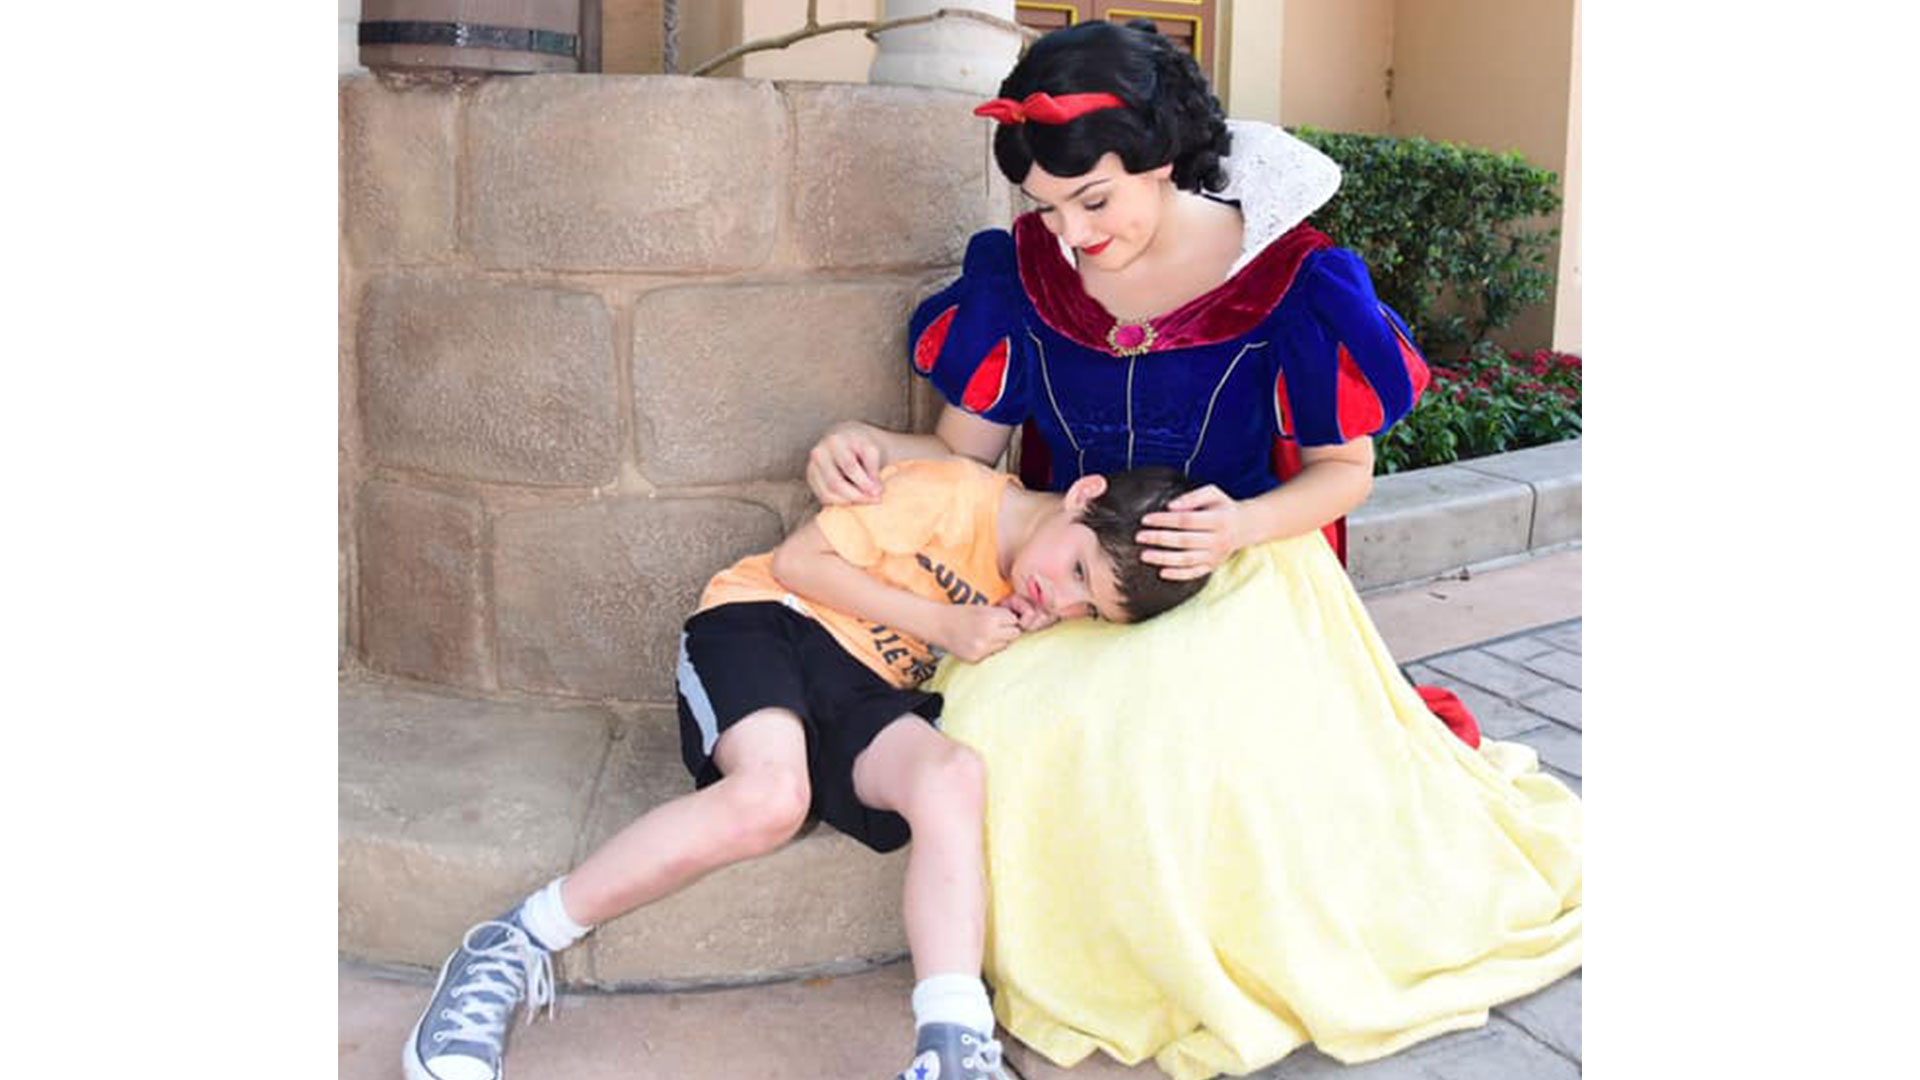 Snow White Comforts Boy with Autism